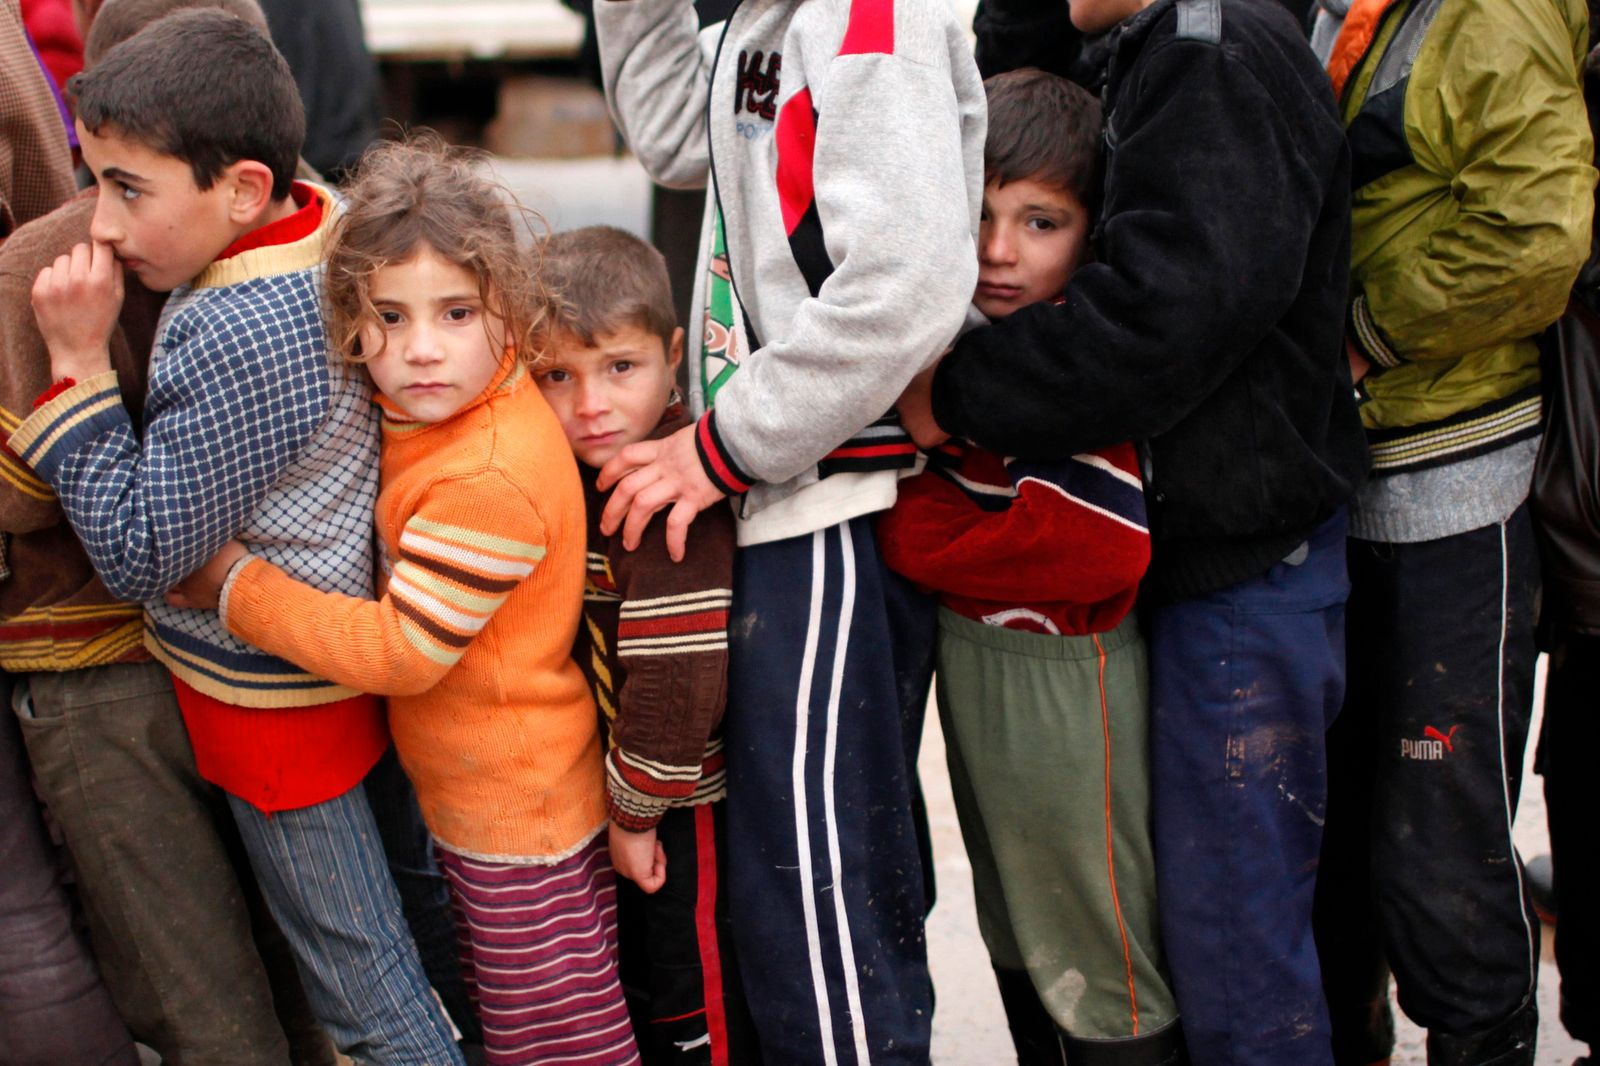 File photo of Syrian refugee children queuing as they wait to receive aid from Turkish humanitarian agencies at Bab al-Salam refugee camp in Syria near the Turkish border